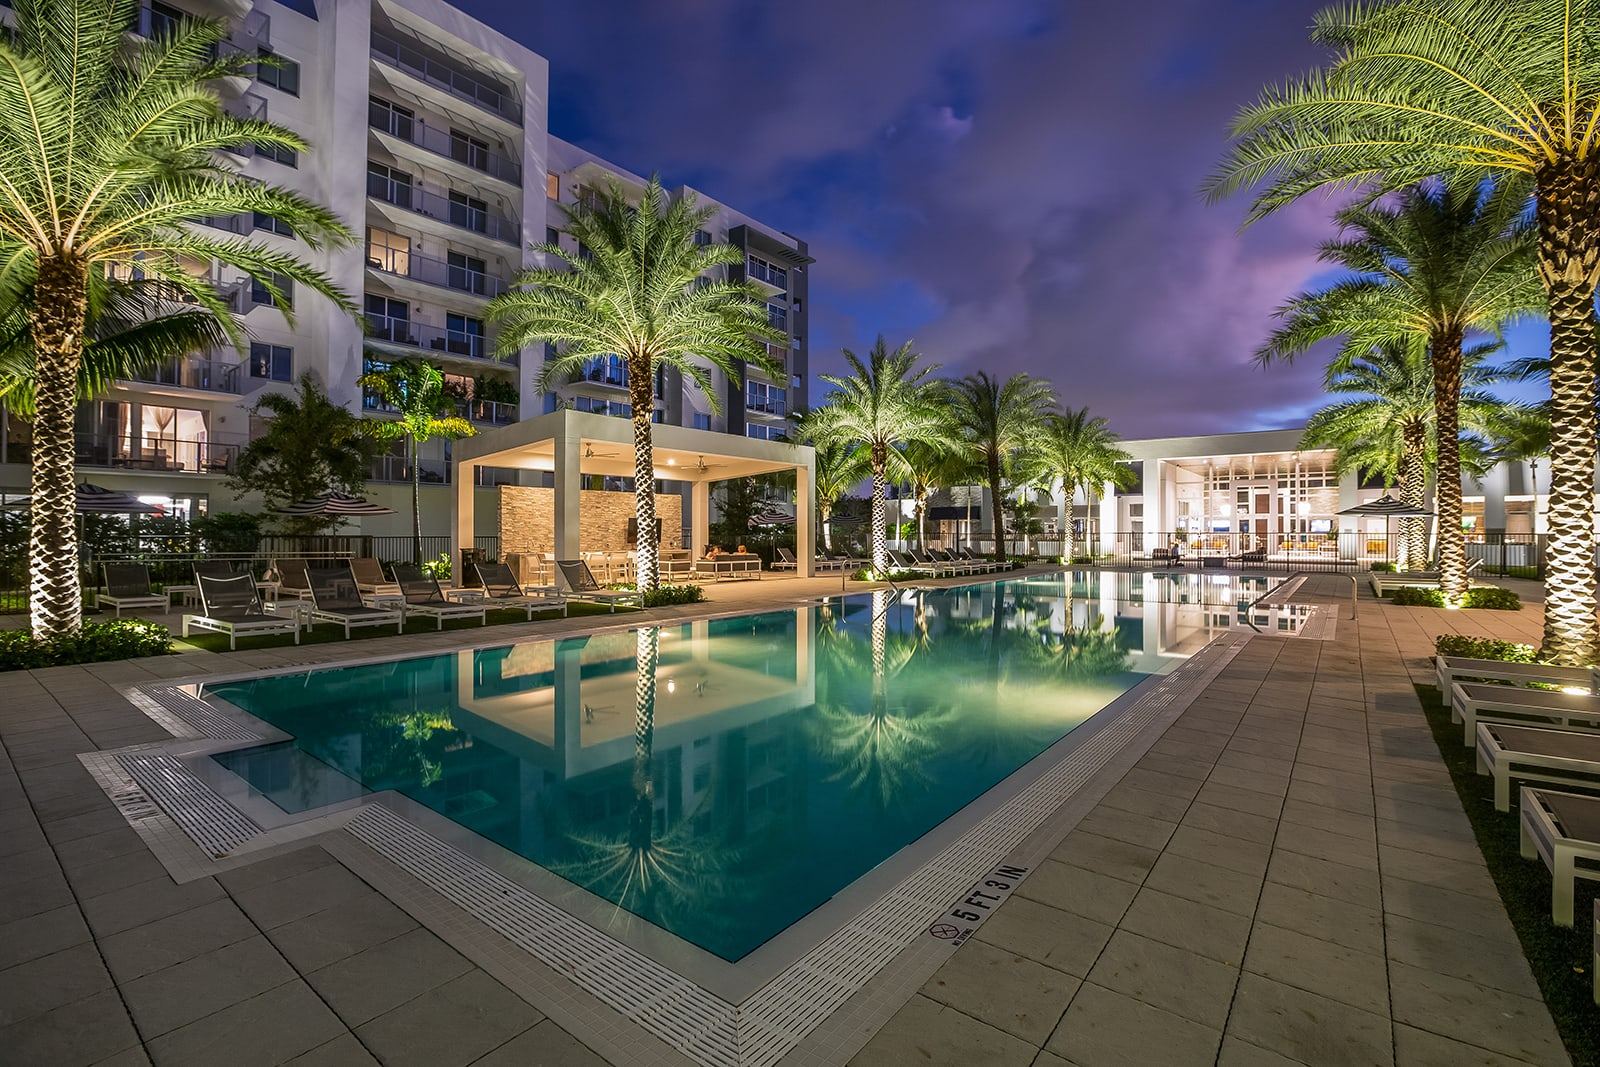 Pool and deck at night at Allure by Windsor, FL, 33487